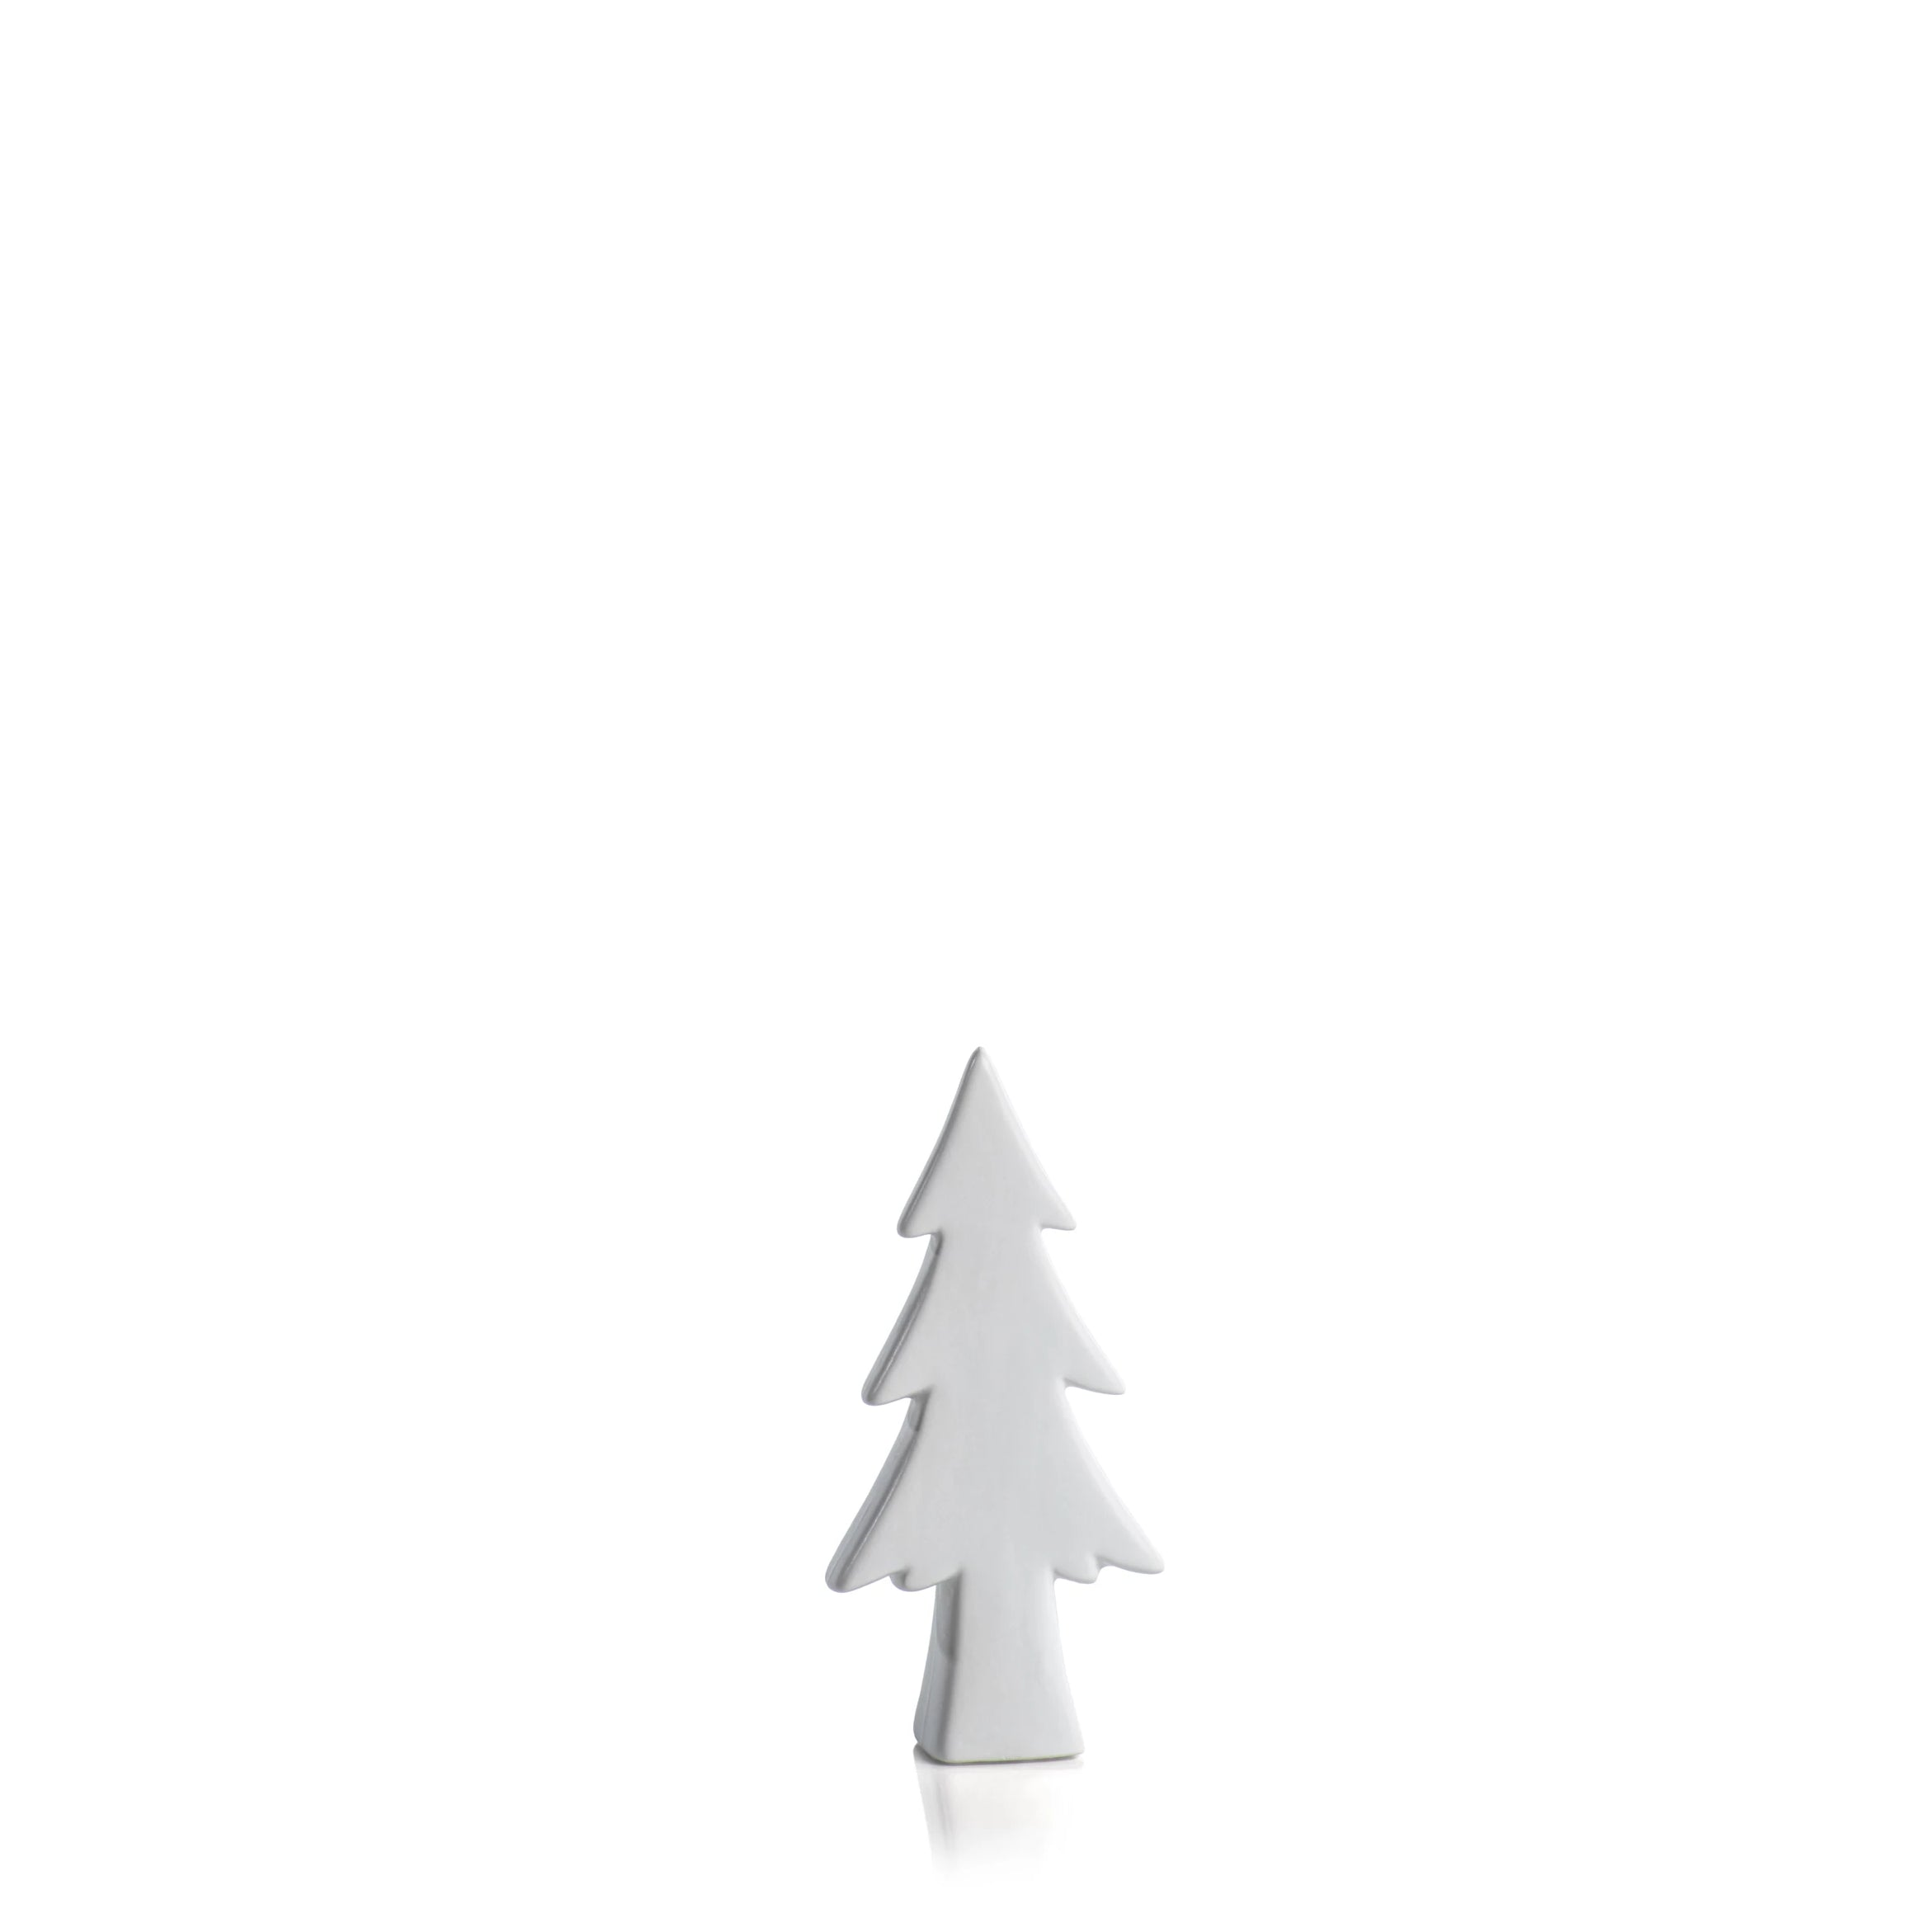 Matt White Decorative Tree - CARLYLE AVENUE